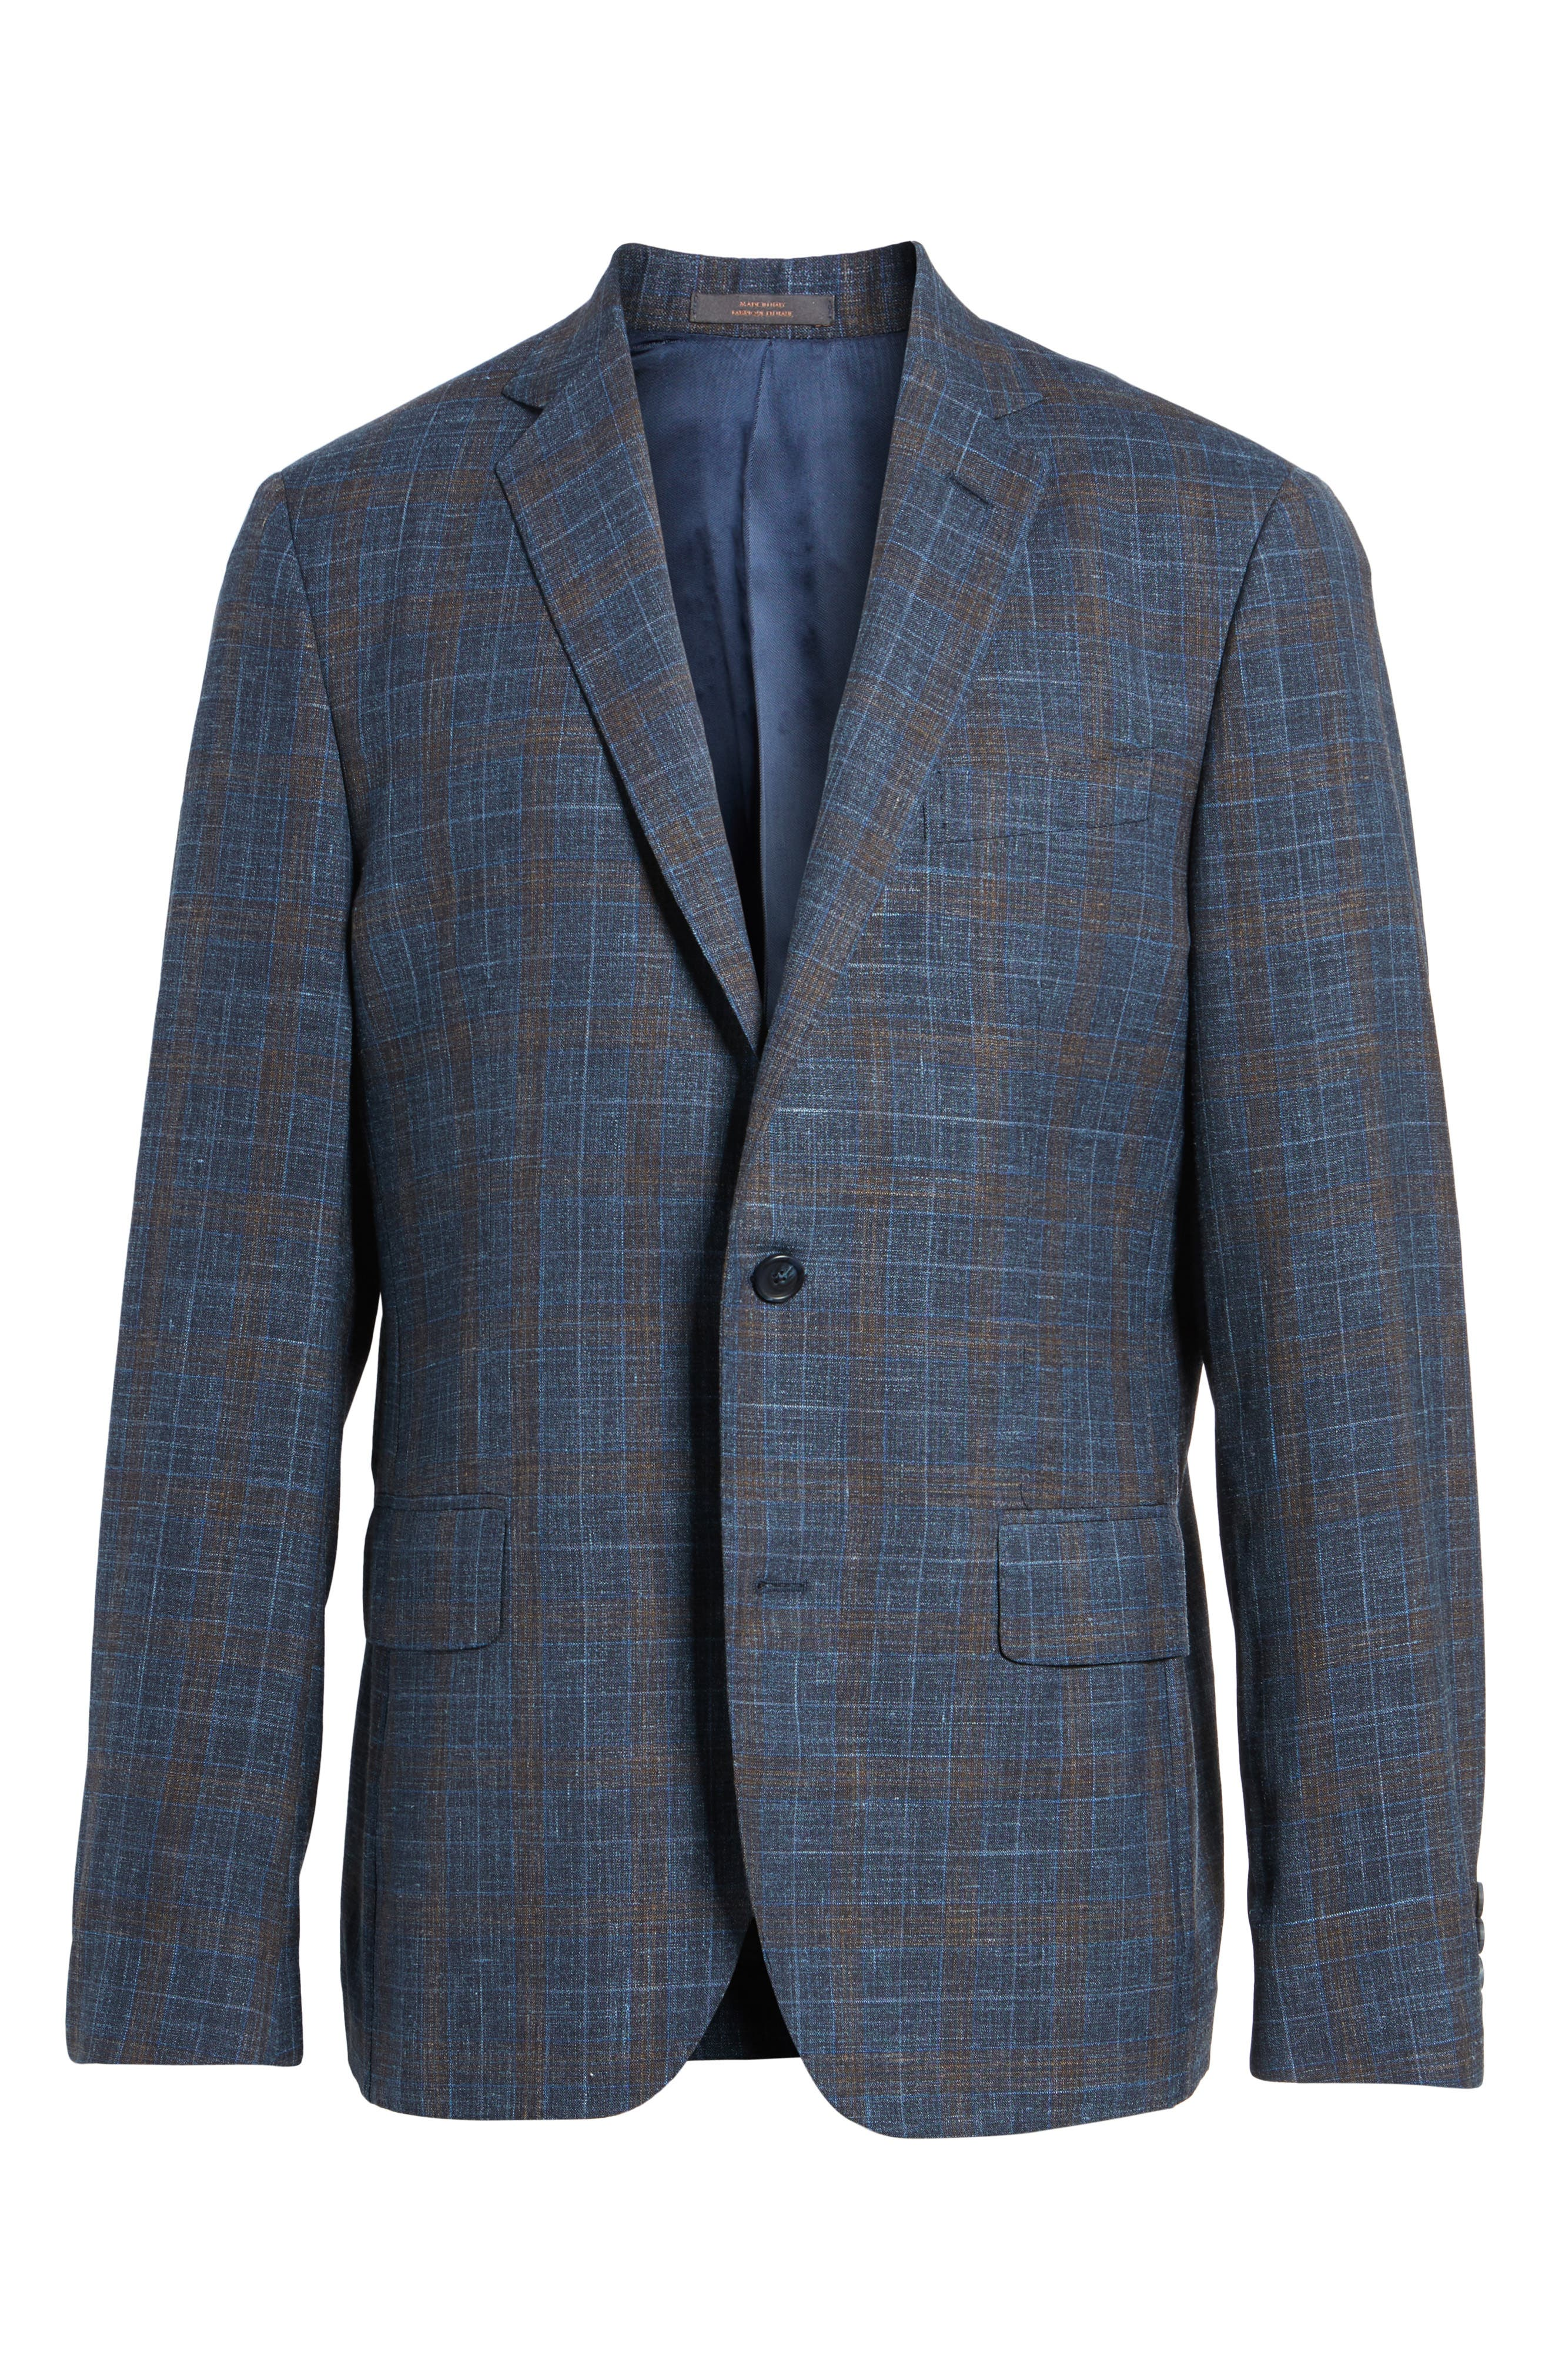 Trim Fit Plaid Wool Blend Sport Coat,                             Alternate thumbnail 6, color,                             Navy